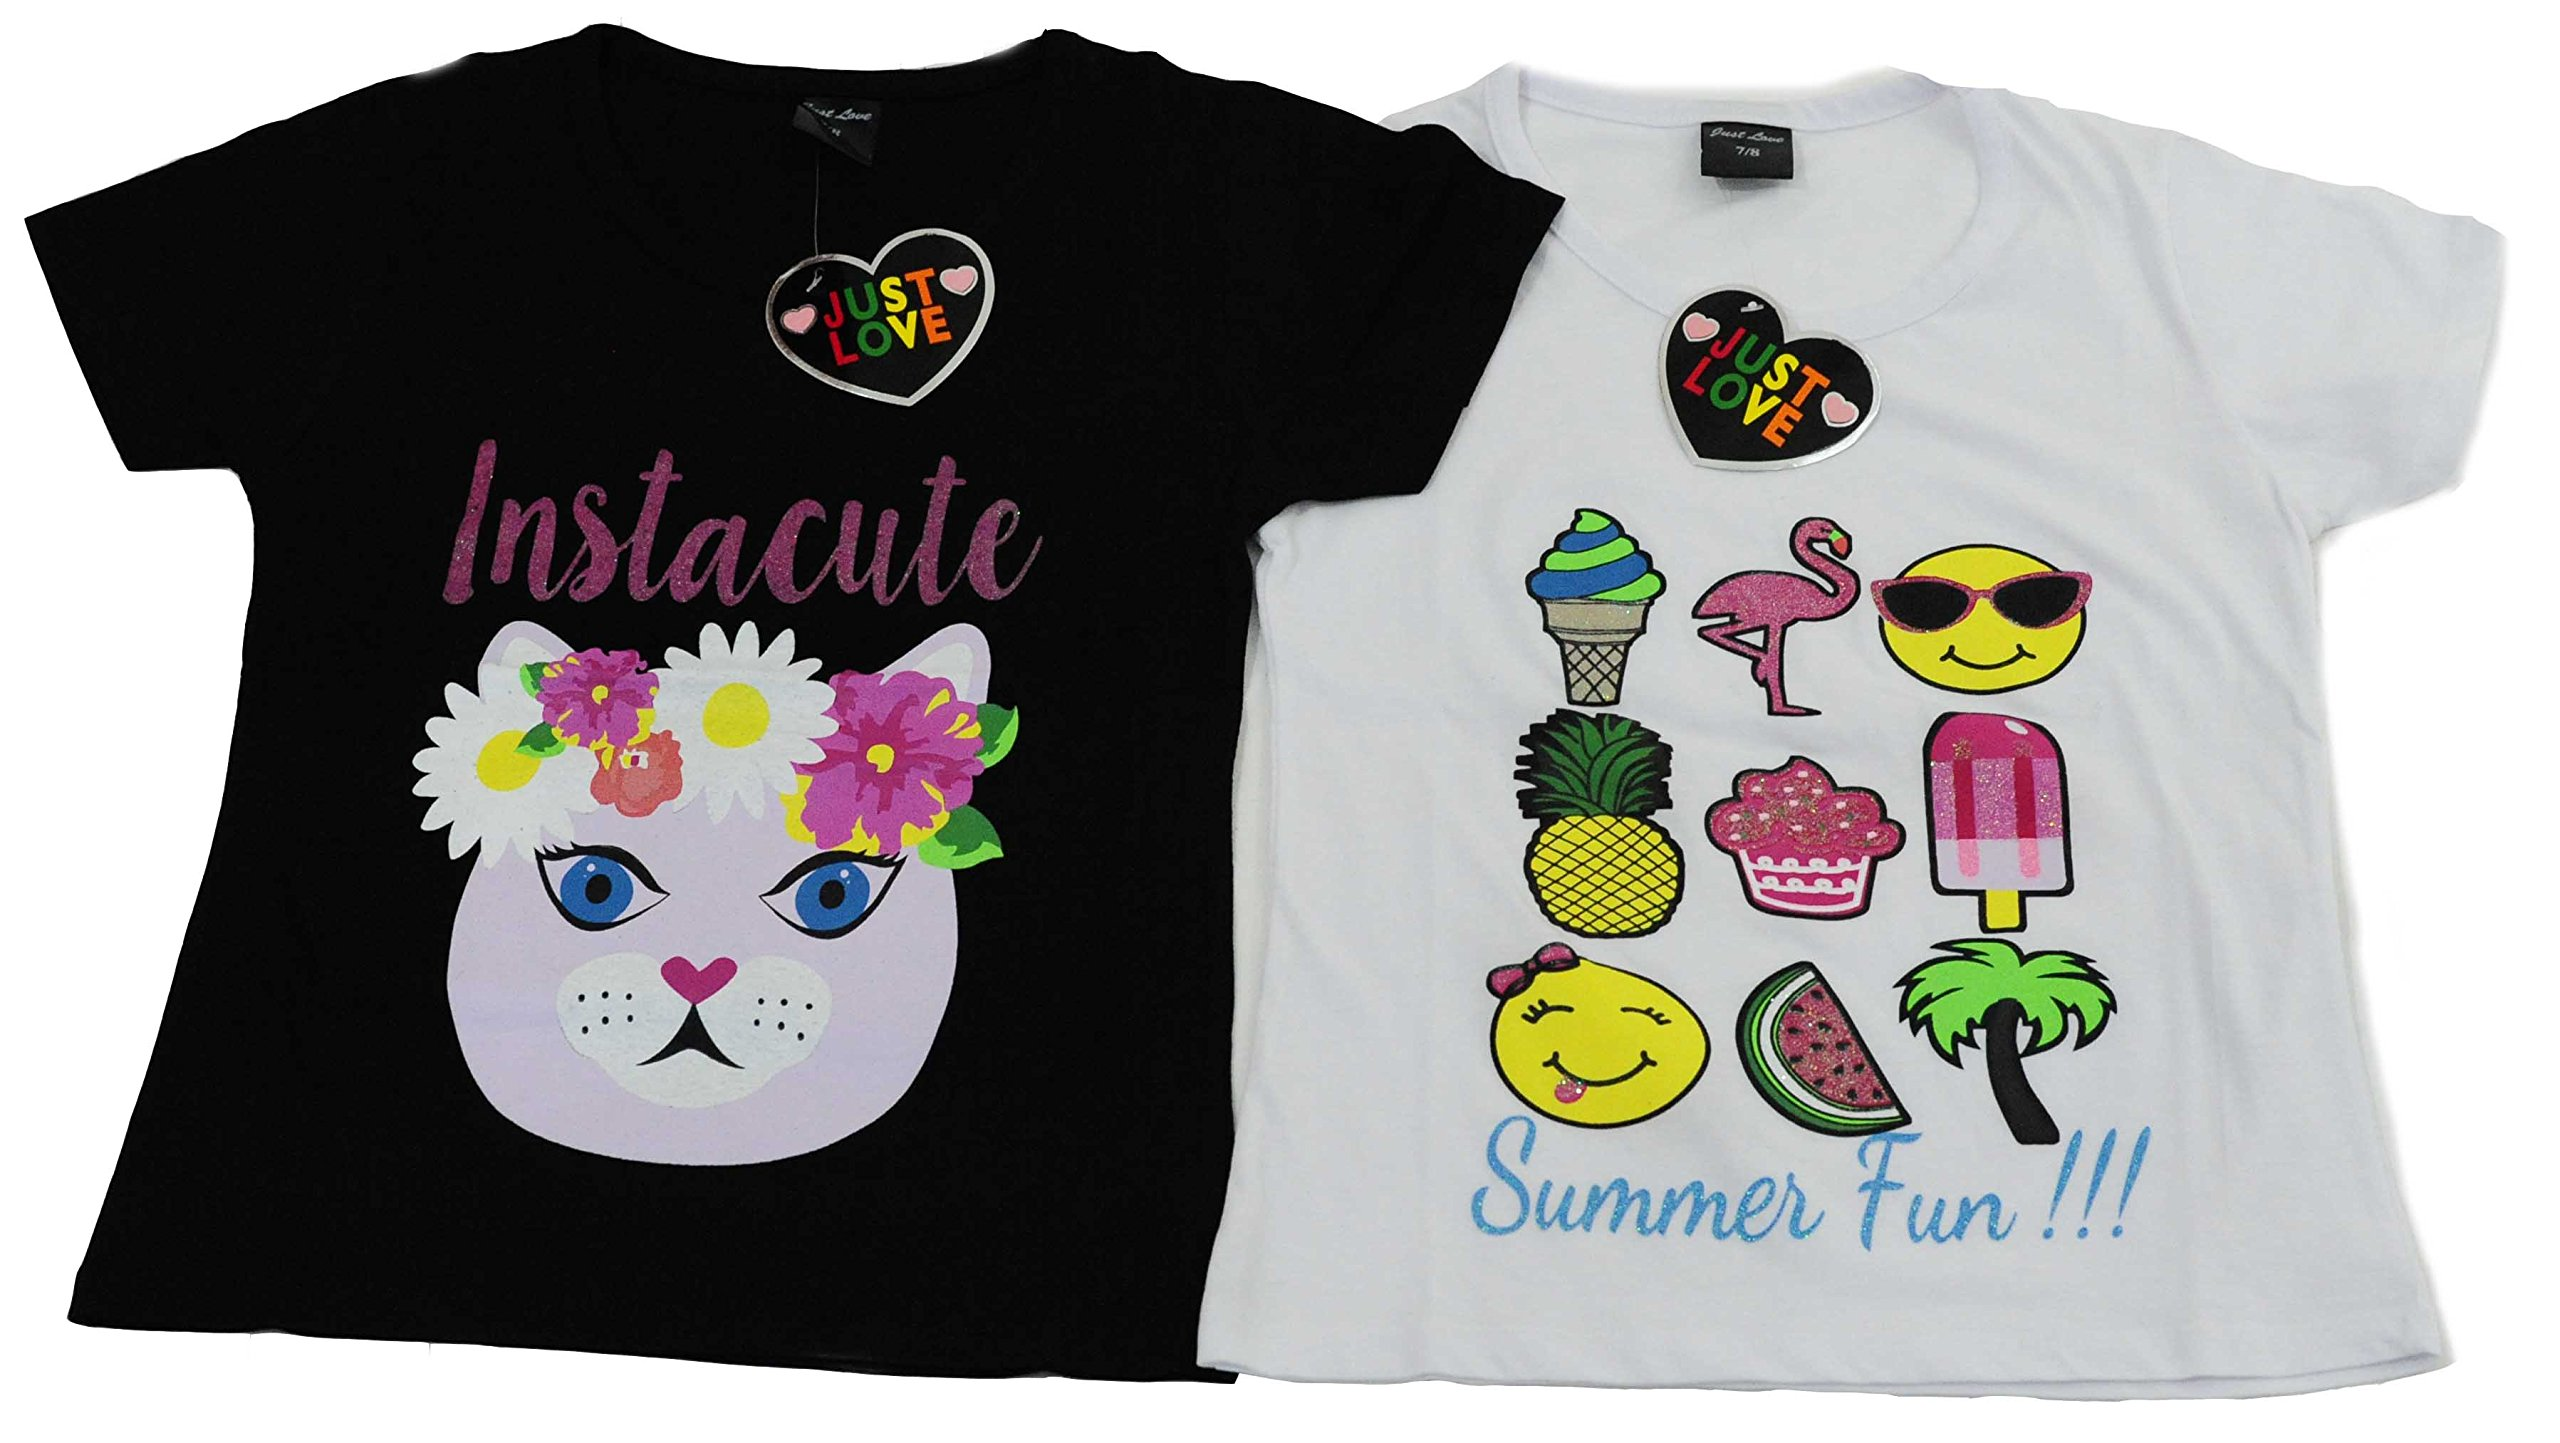 15503-A-10-12 Just Love T Shirts for Girls (Pack of 2)